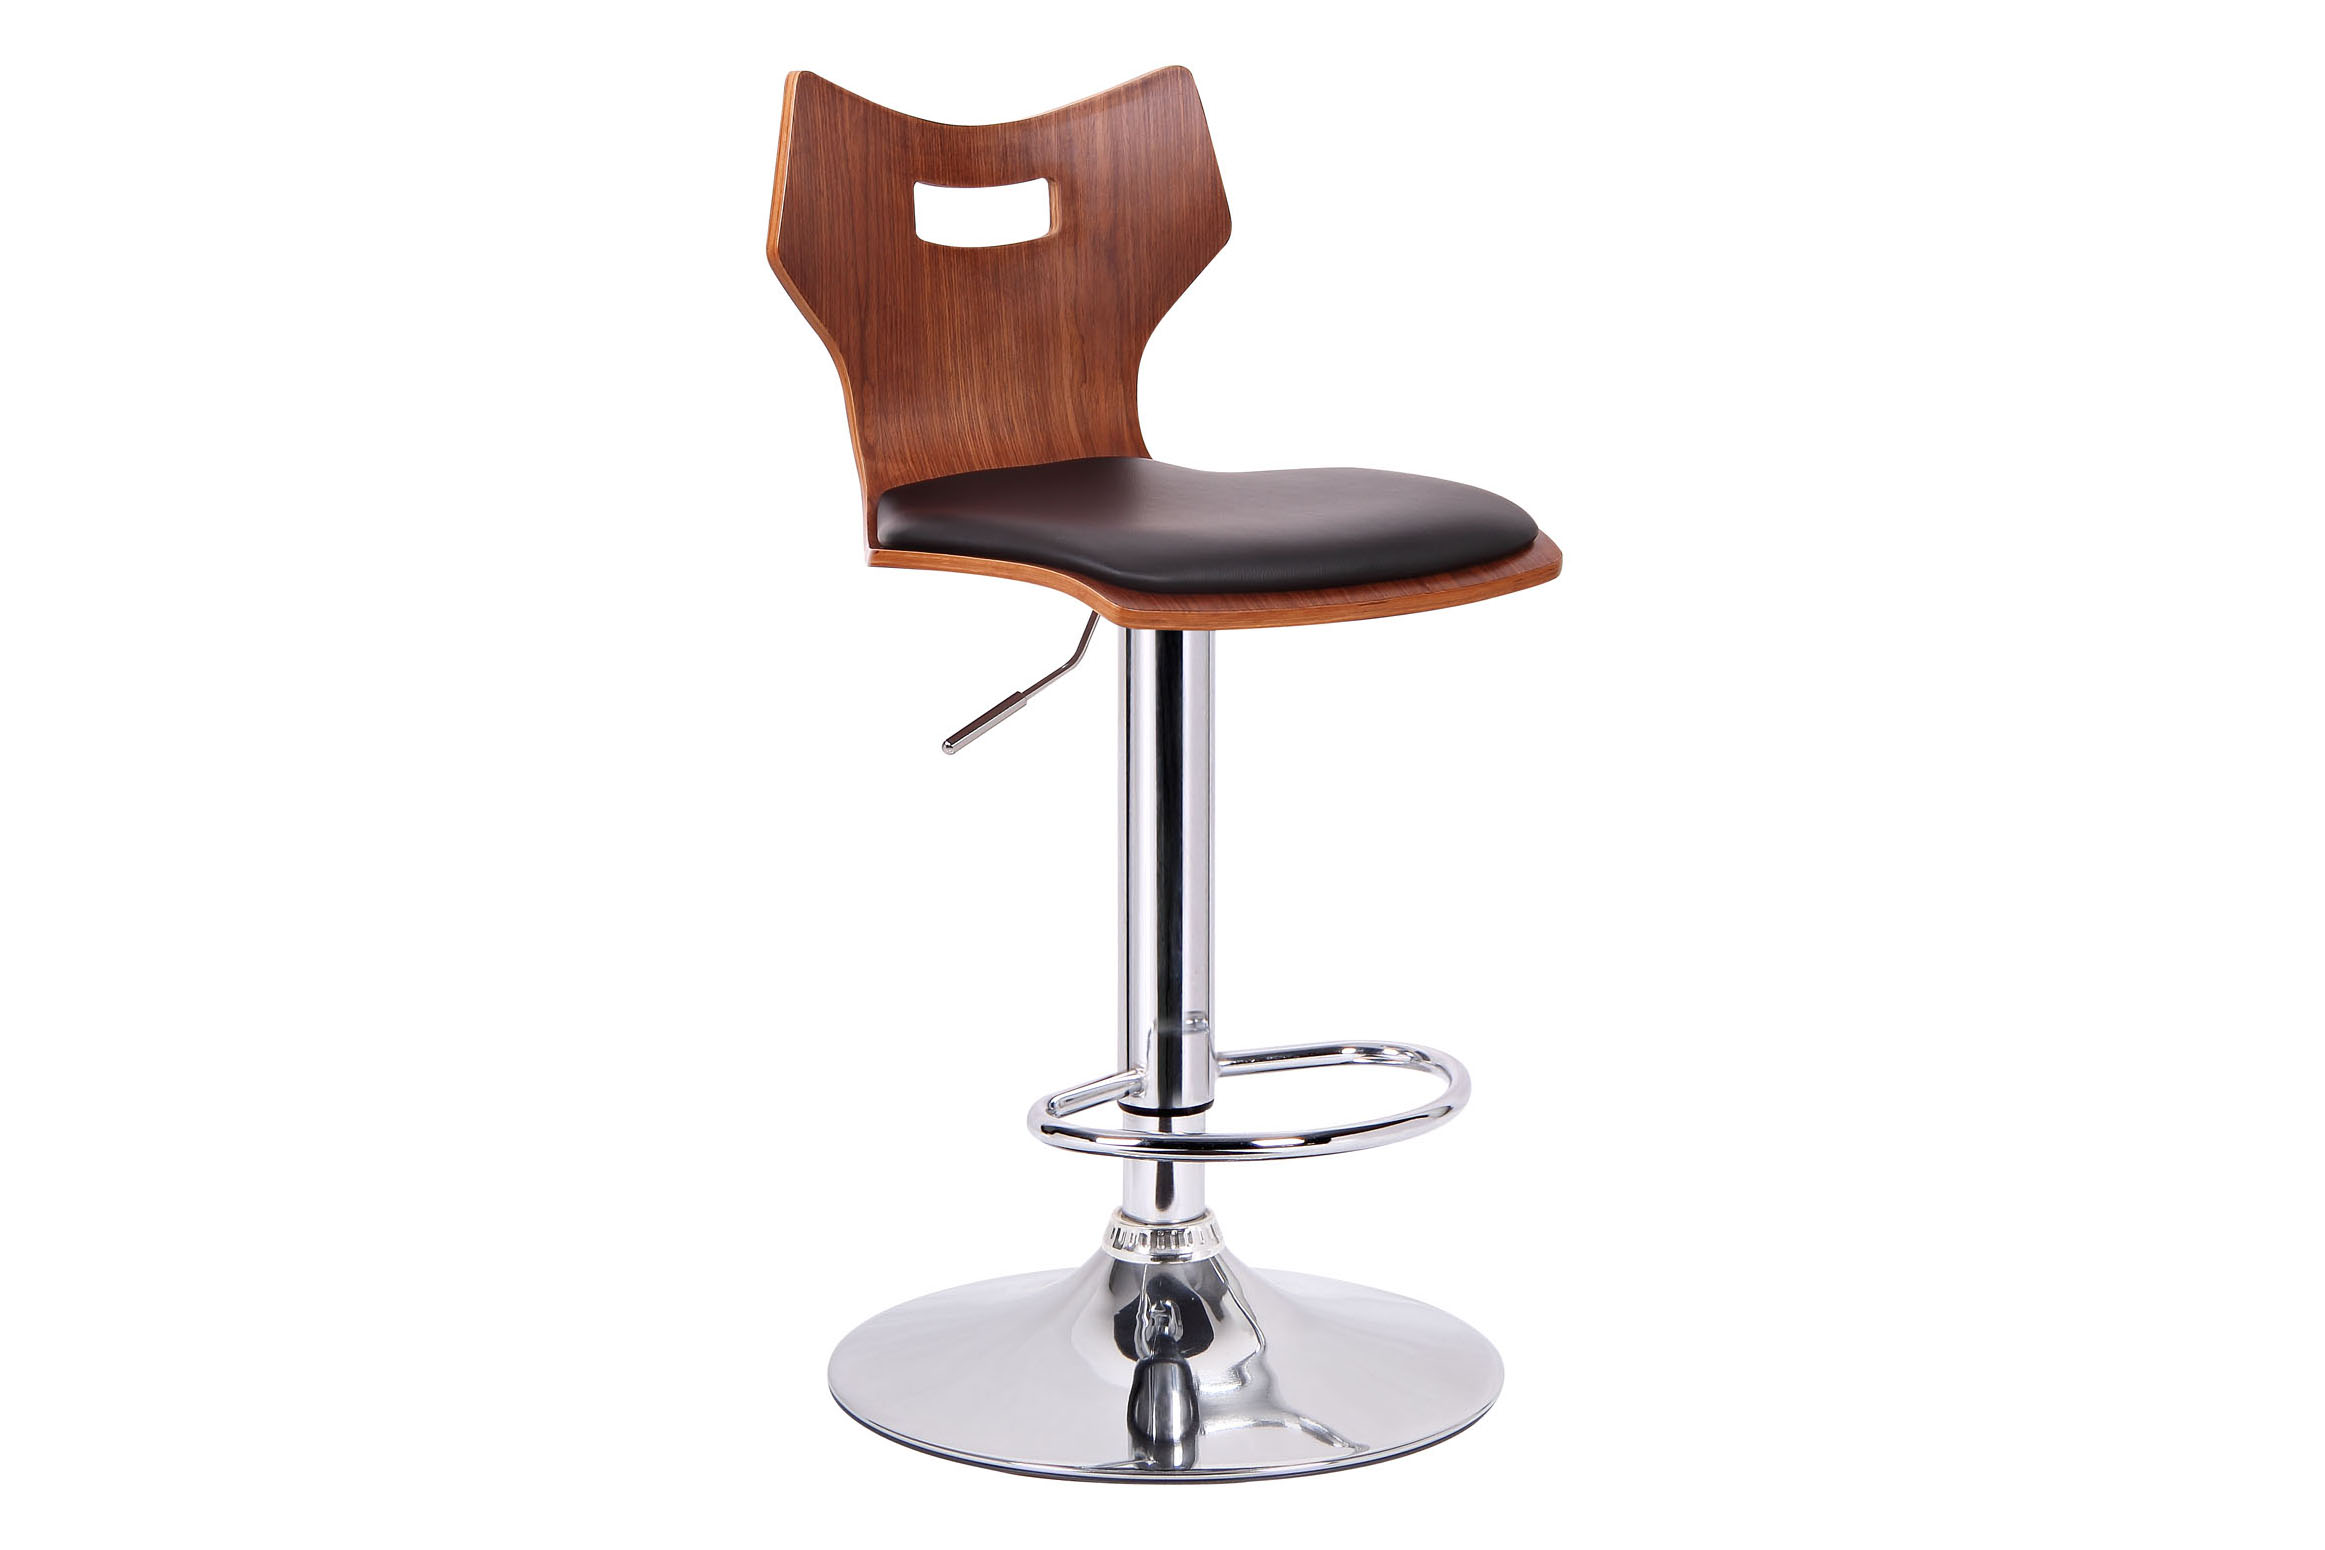 Baxton Studio Amery Walnut and Black Modern Bar Stool Set of Two Amery Walnut and Black Modern Bar Stool ,IESD-2172-walnut/black-PSTL (2),compare Amery Walnut and Black Modern Bar Stool ,best price on Amery Walnut and Black Modern Bar Stool ,discount  Amery Walnut and Black Modern Bar Stool ,cheap  Amery Walnut and Black Modern Bar Stool